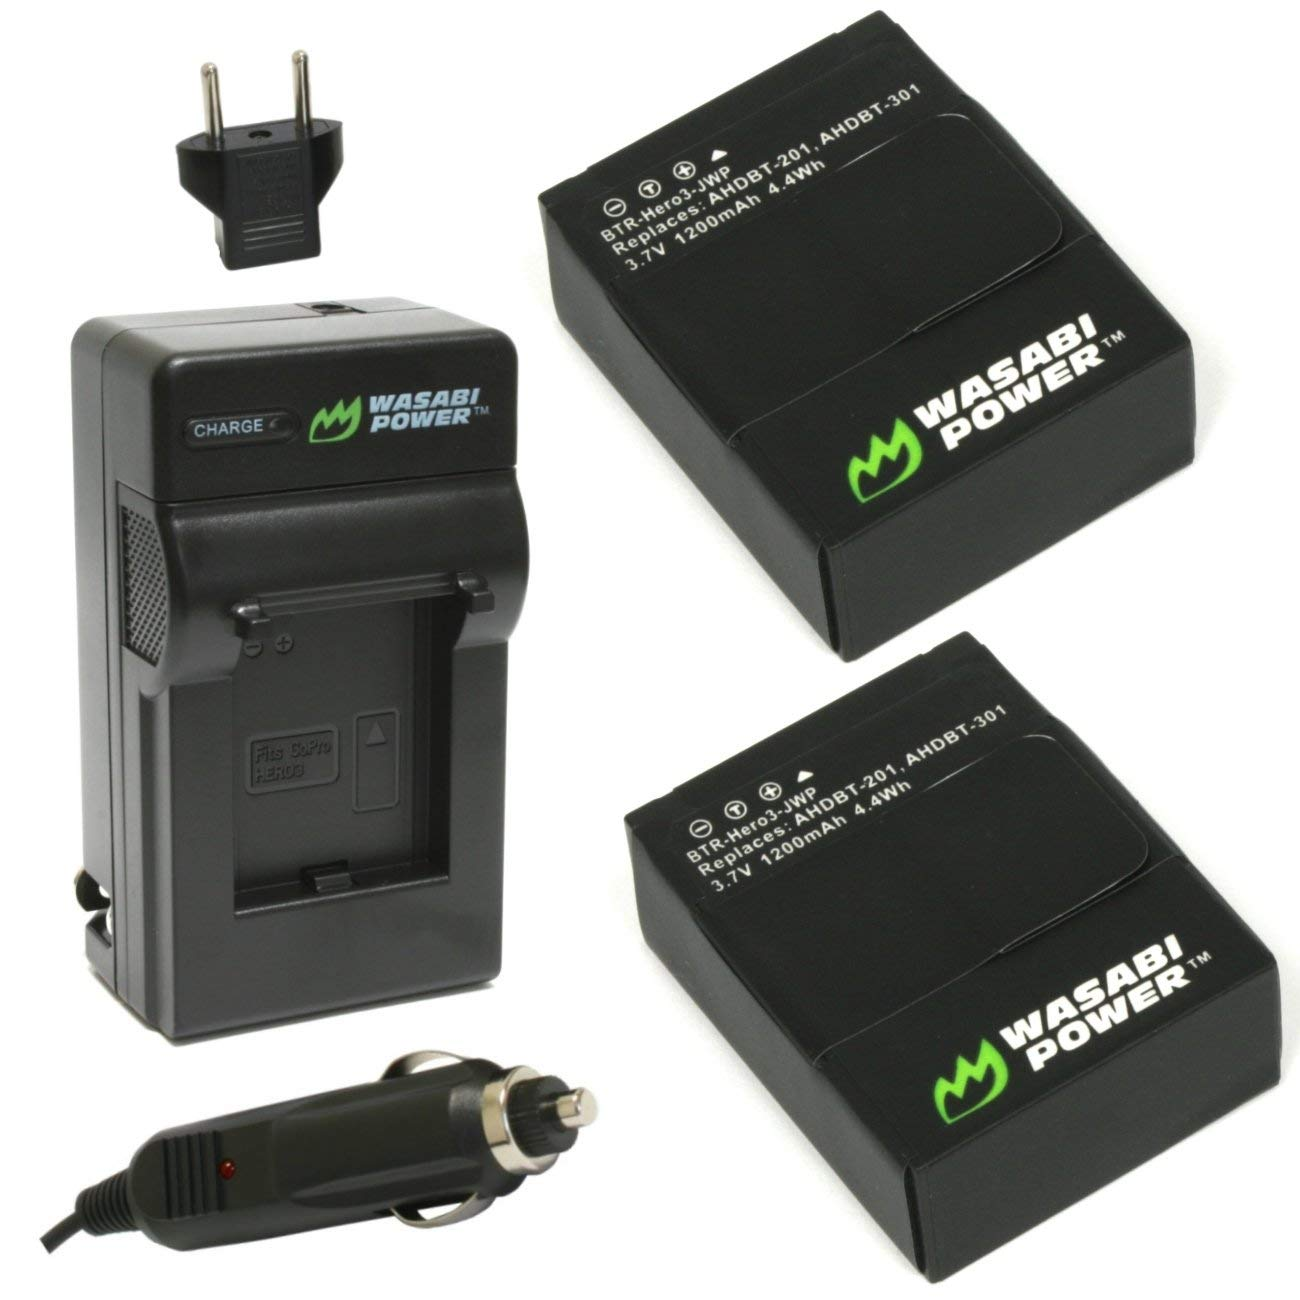 Wasabi Power Battery (2-Pack) and Charger for GoPro HERO3+, HERO3 and GoPro AHDBT-201, AHDBT-301, AHDBT-302 by Wasabi Power